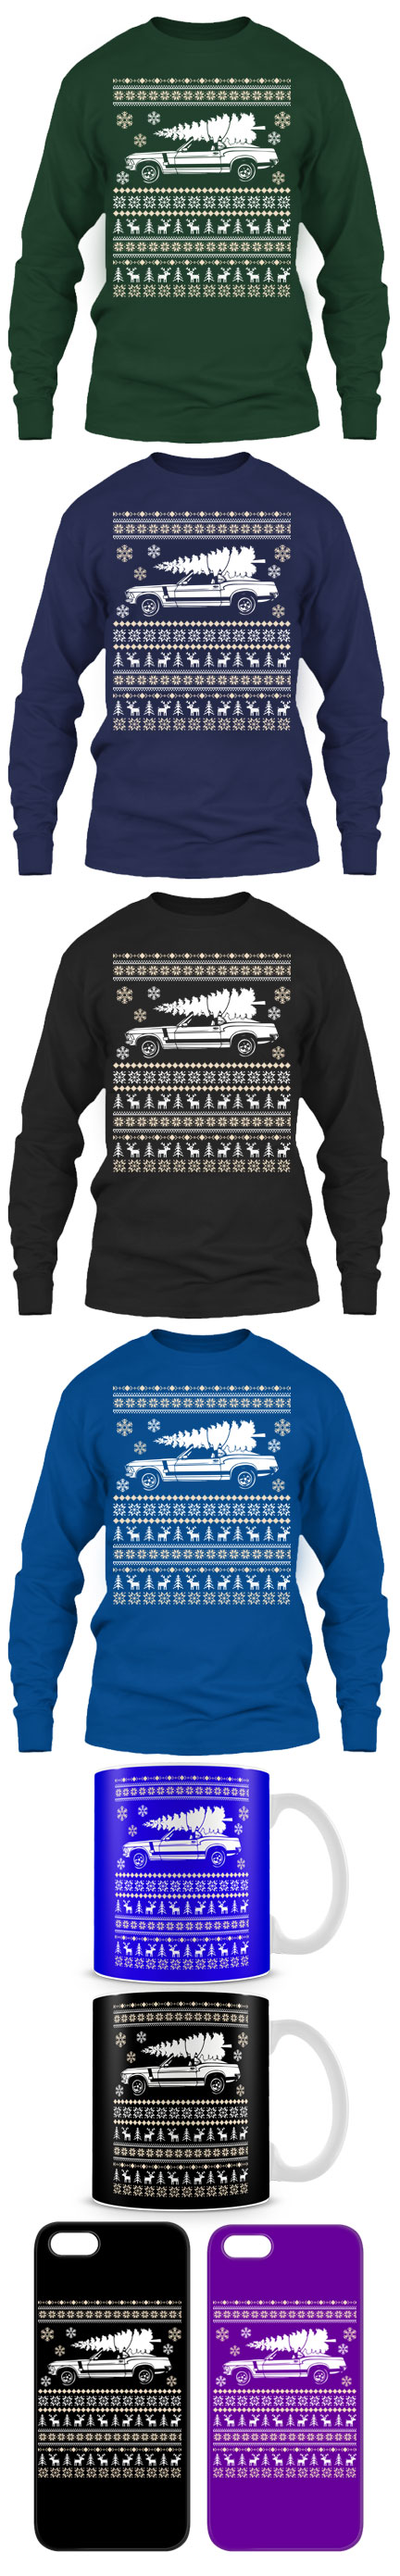 Ford Mustang Ugly Christmas Sweater Click The Image To Buy It Now